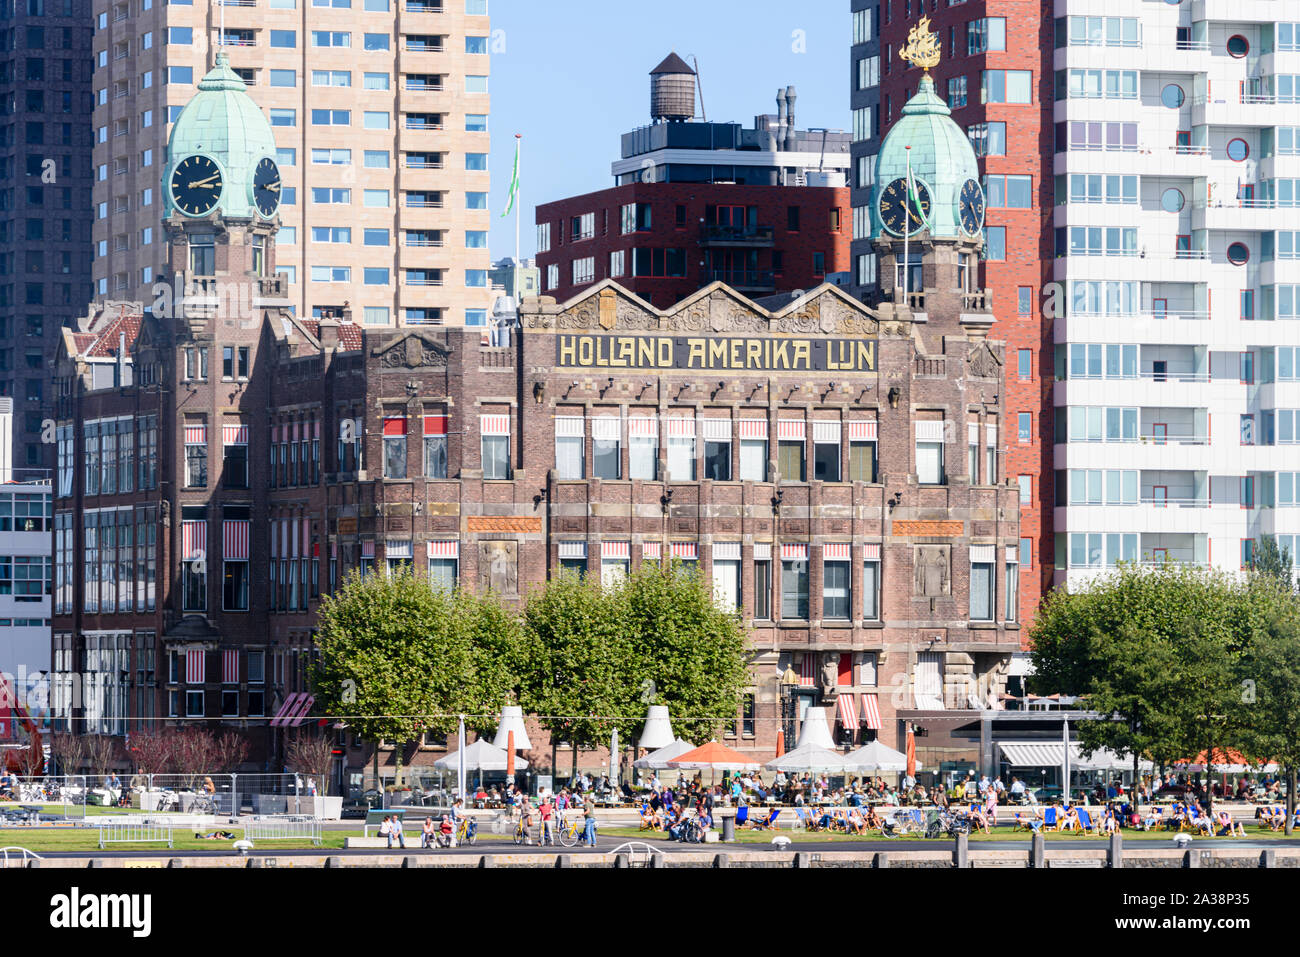 The old Holland Amerika Lijn (Holland America Line) building, now Hotel New York, surrounded by modern office blocks, Rijnhaven, Rotterdam, Netherland Stock Photo